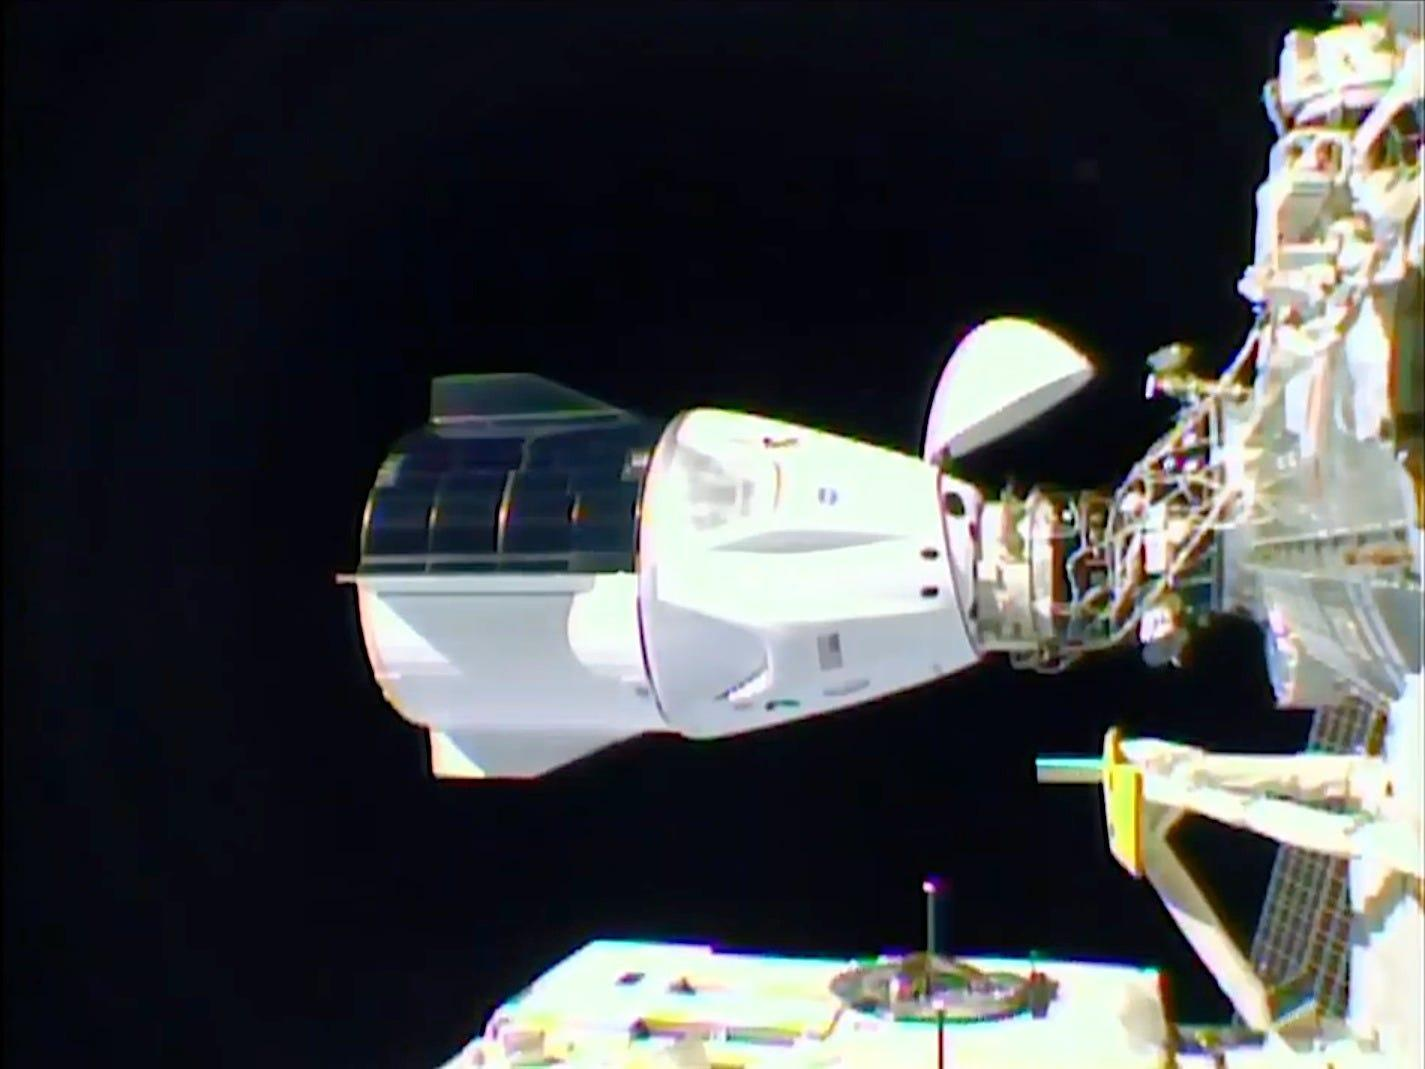 SpaceX's 'Resilience' spaceship autonomously docked to the space station with 4 astronauts inside, kicking off a historic mission for NASA